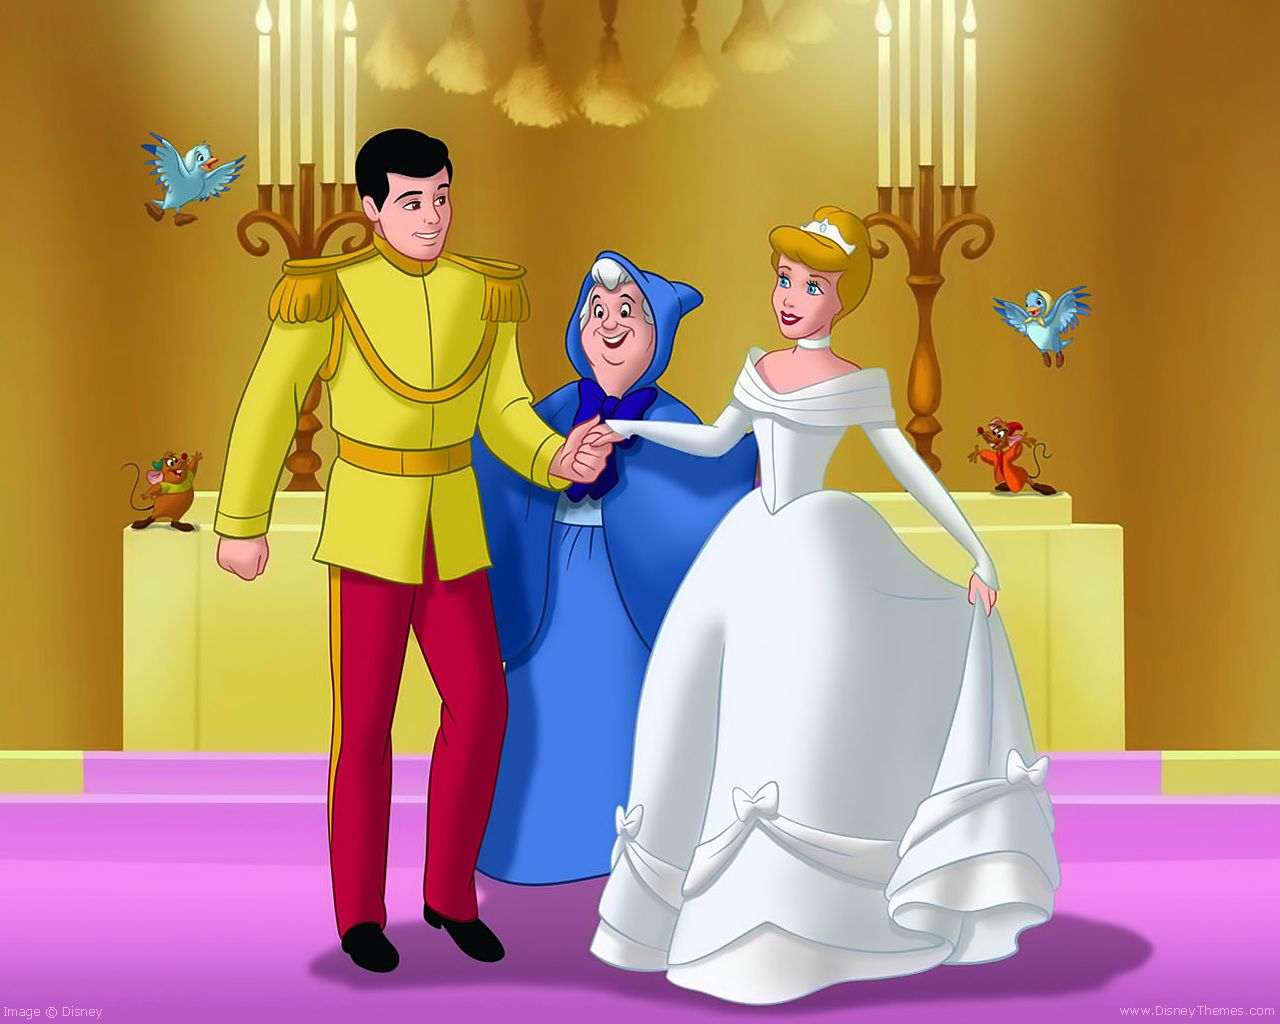 cinderella wedding cinderella wedding Cinderella Wedding Cinderella Wedding Wallpaper